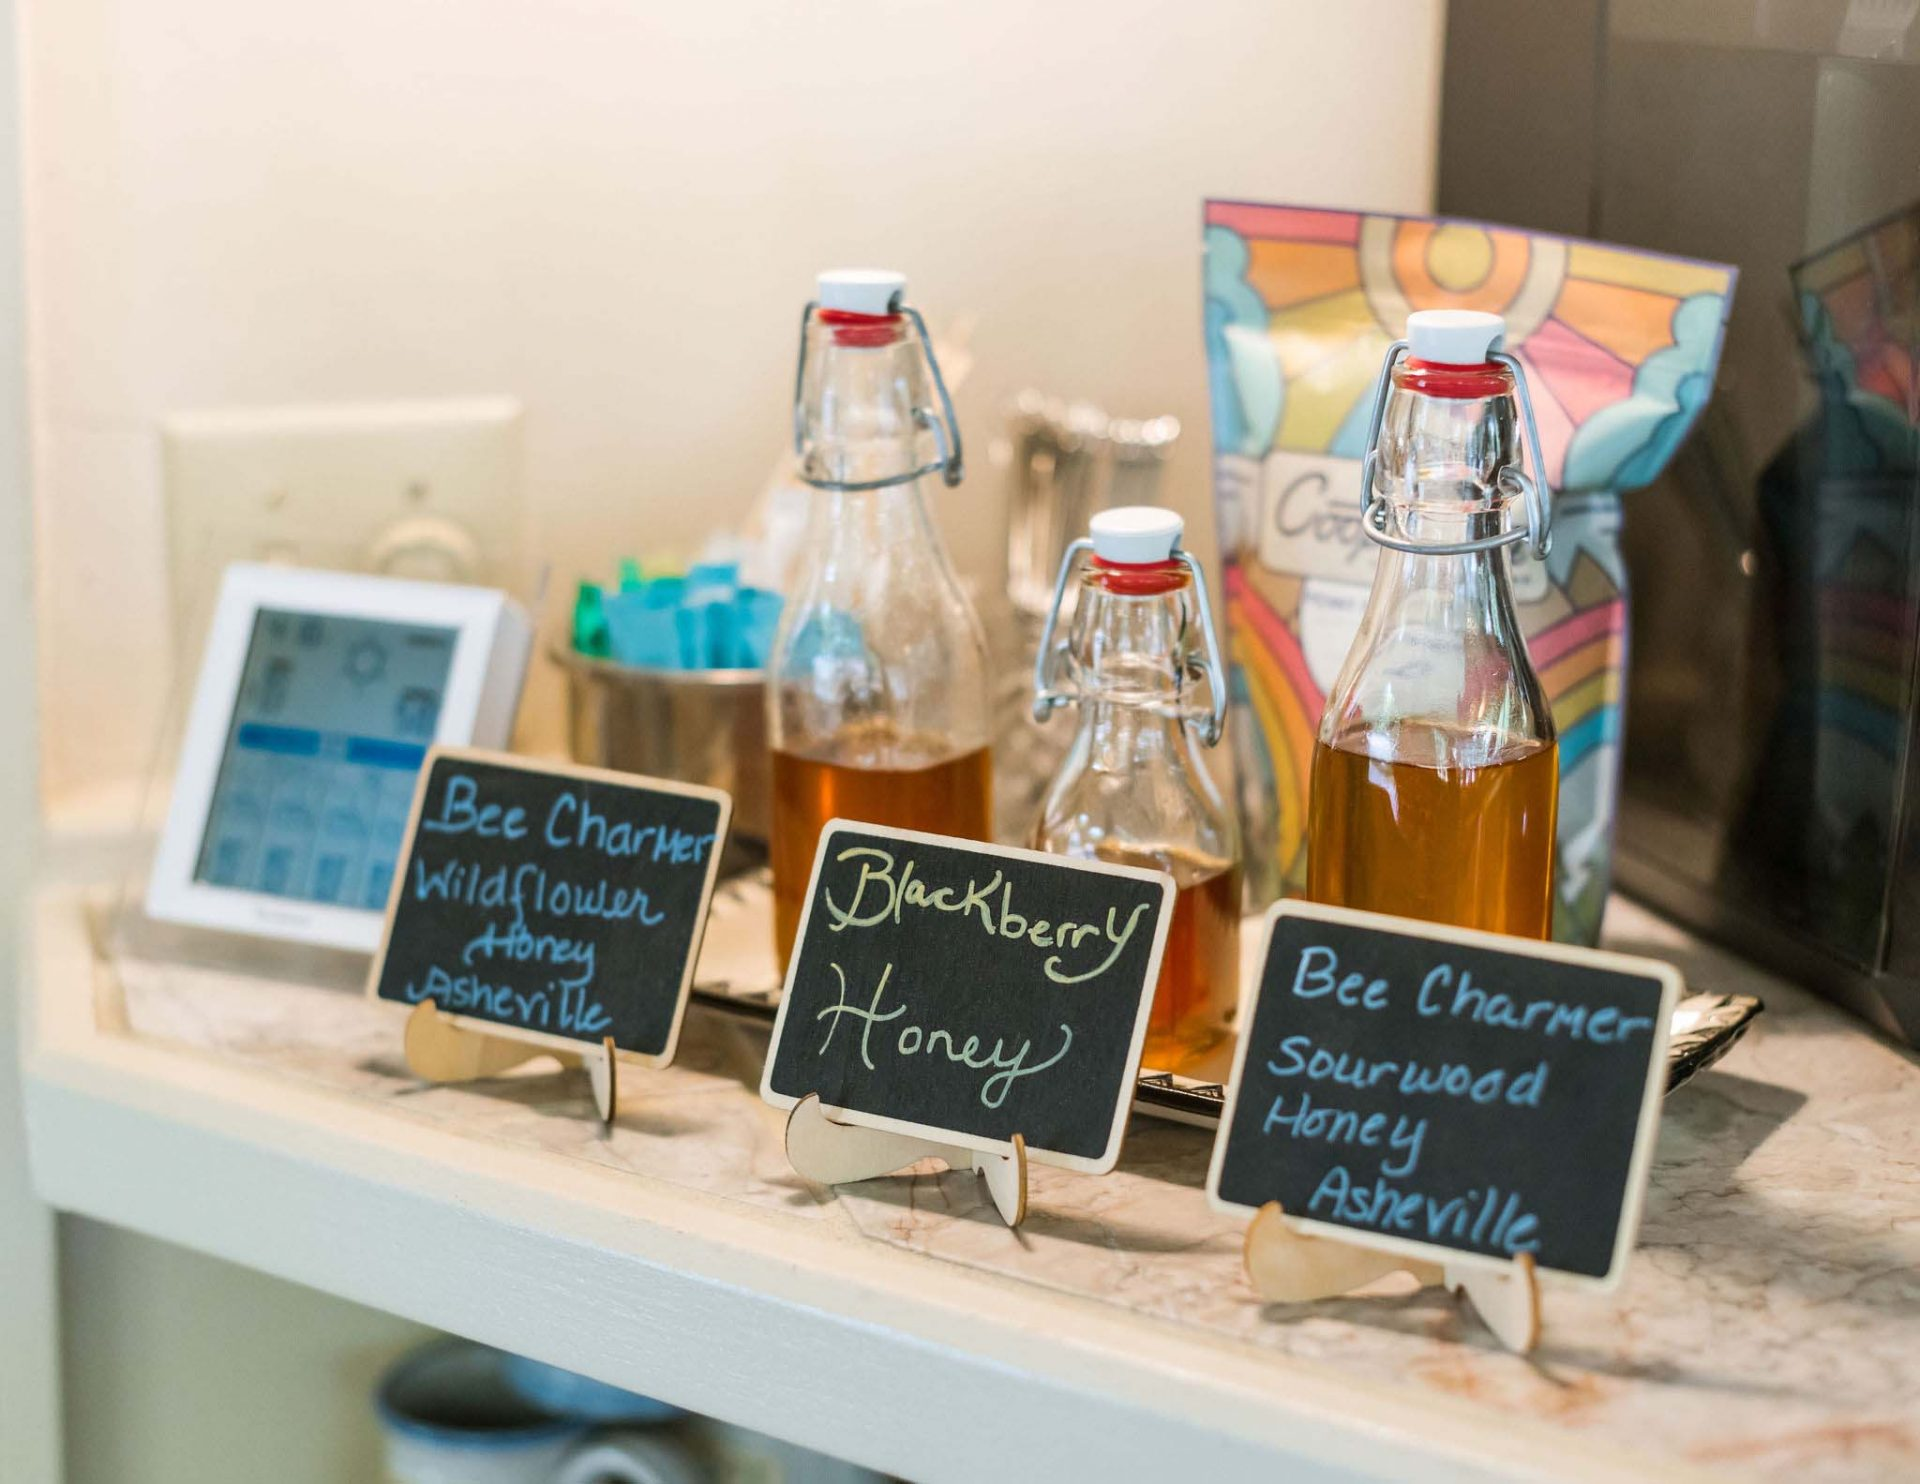 3 glass bottles of locally made honeys with tags describing the flavors - wildflower honey, blackberry honey, and sourwood honey. In the background a bag of coffee beans, sugar, and spoons.